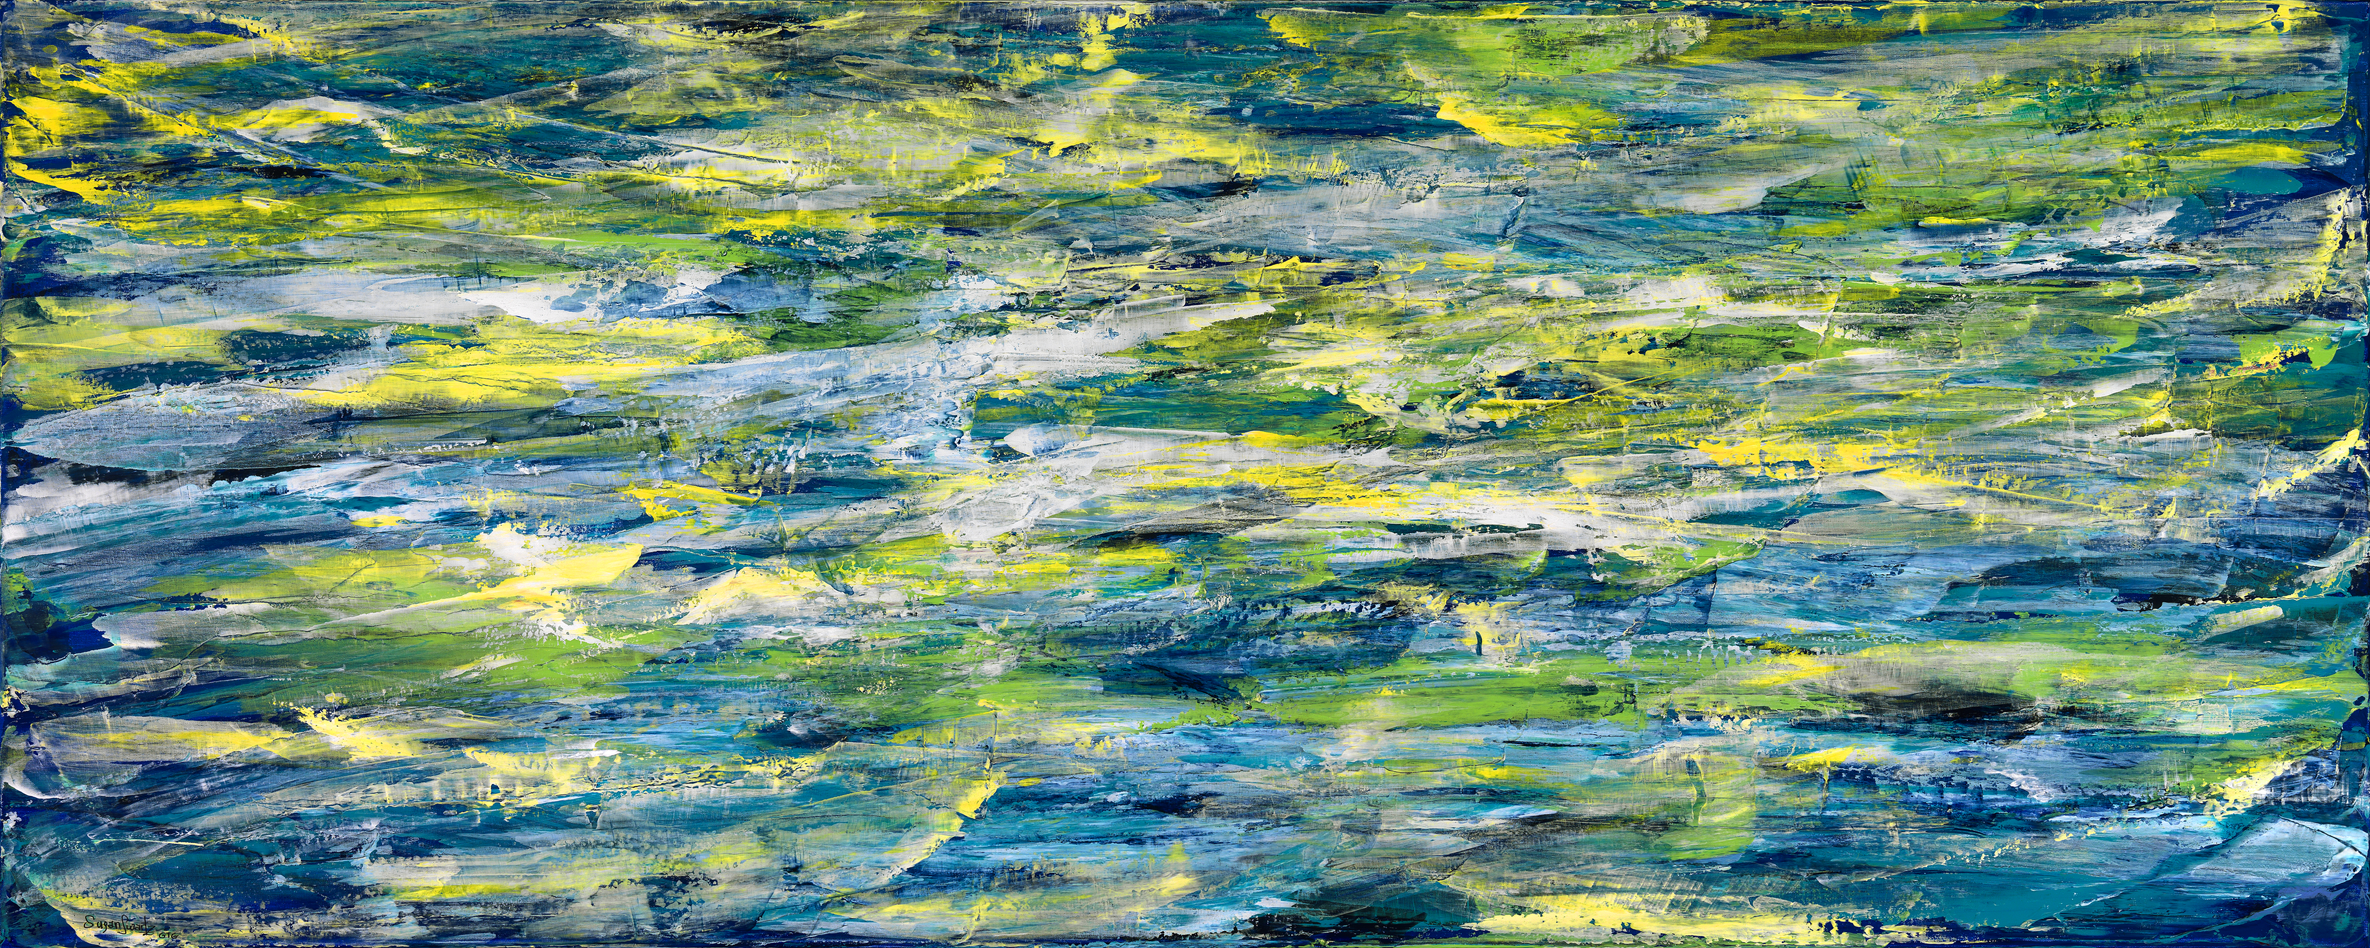 Water Study 008  60 x 24  Acrylic on Linen